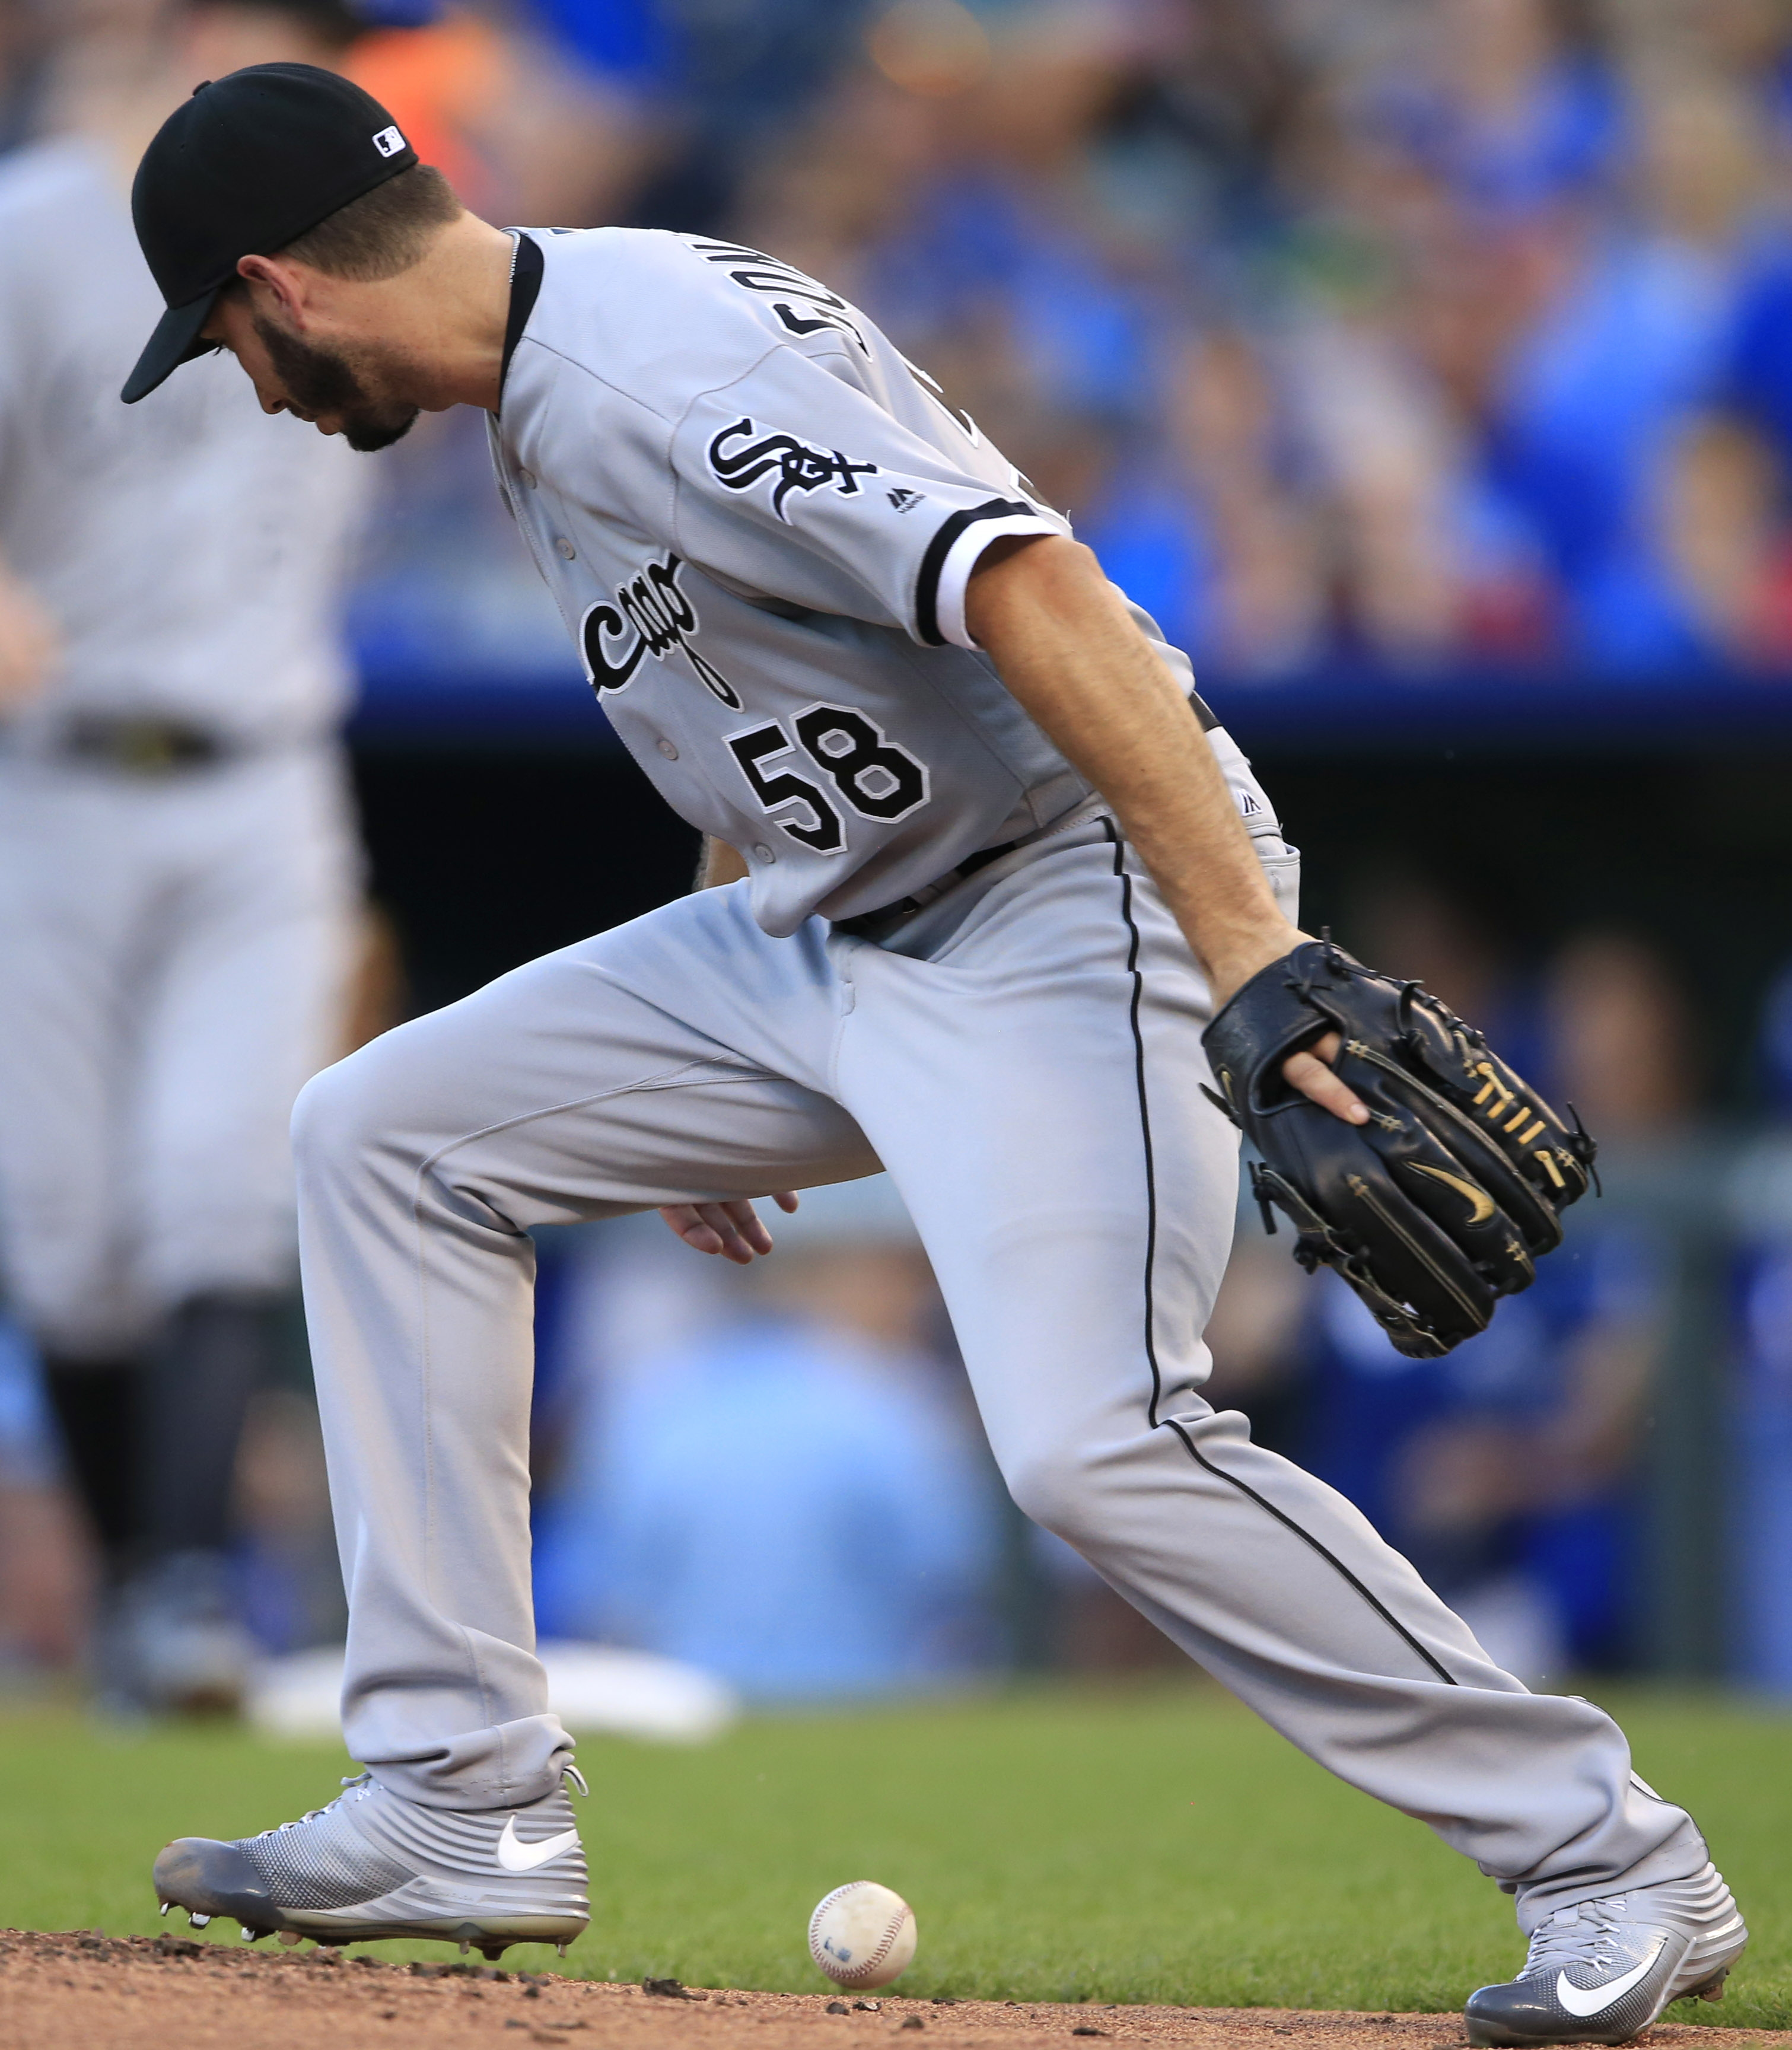 Chicago White Sox starting pitcher Miguel Gonzalez knocks down a ball hit by Kansas City Royals' Eric Hosmer during the first inning of a baseball game at Kauffman Stadium in Kansas City, Mo., Thursday, Aug. 11, 2016. Gonzalez threw out Hosmer at first ba